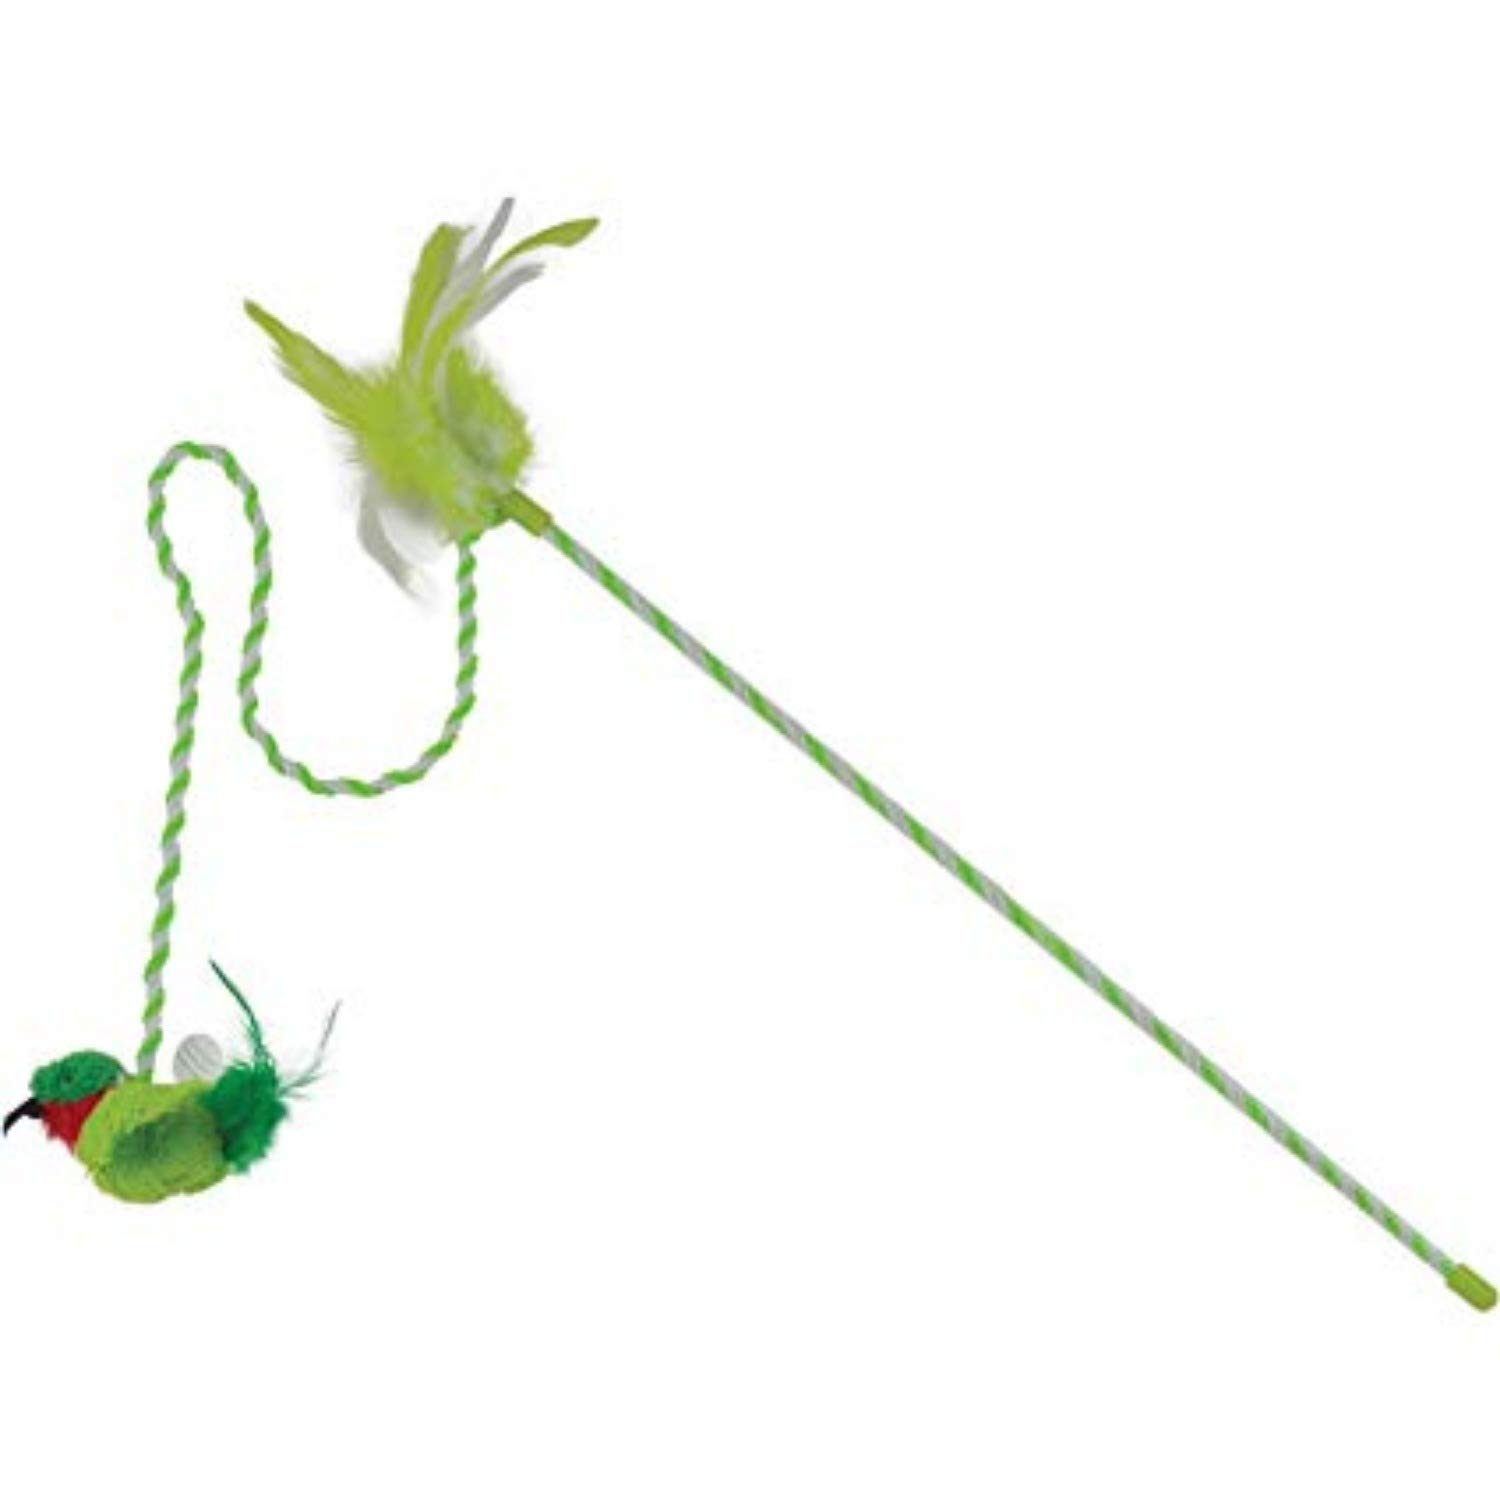 Our Pets Cat Toy Wand with The Original Electronic realbird Sounds Green